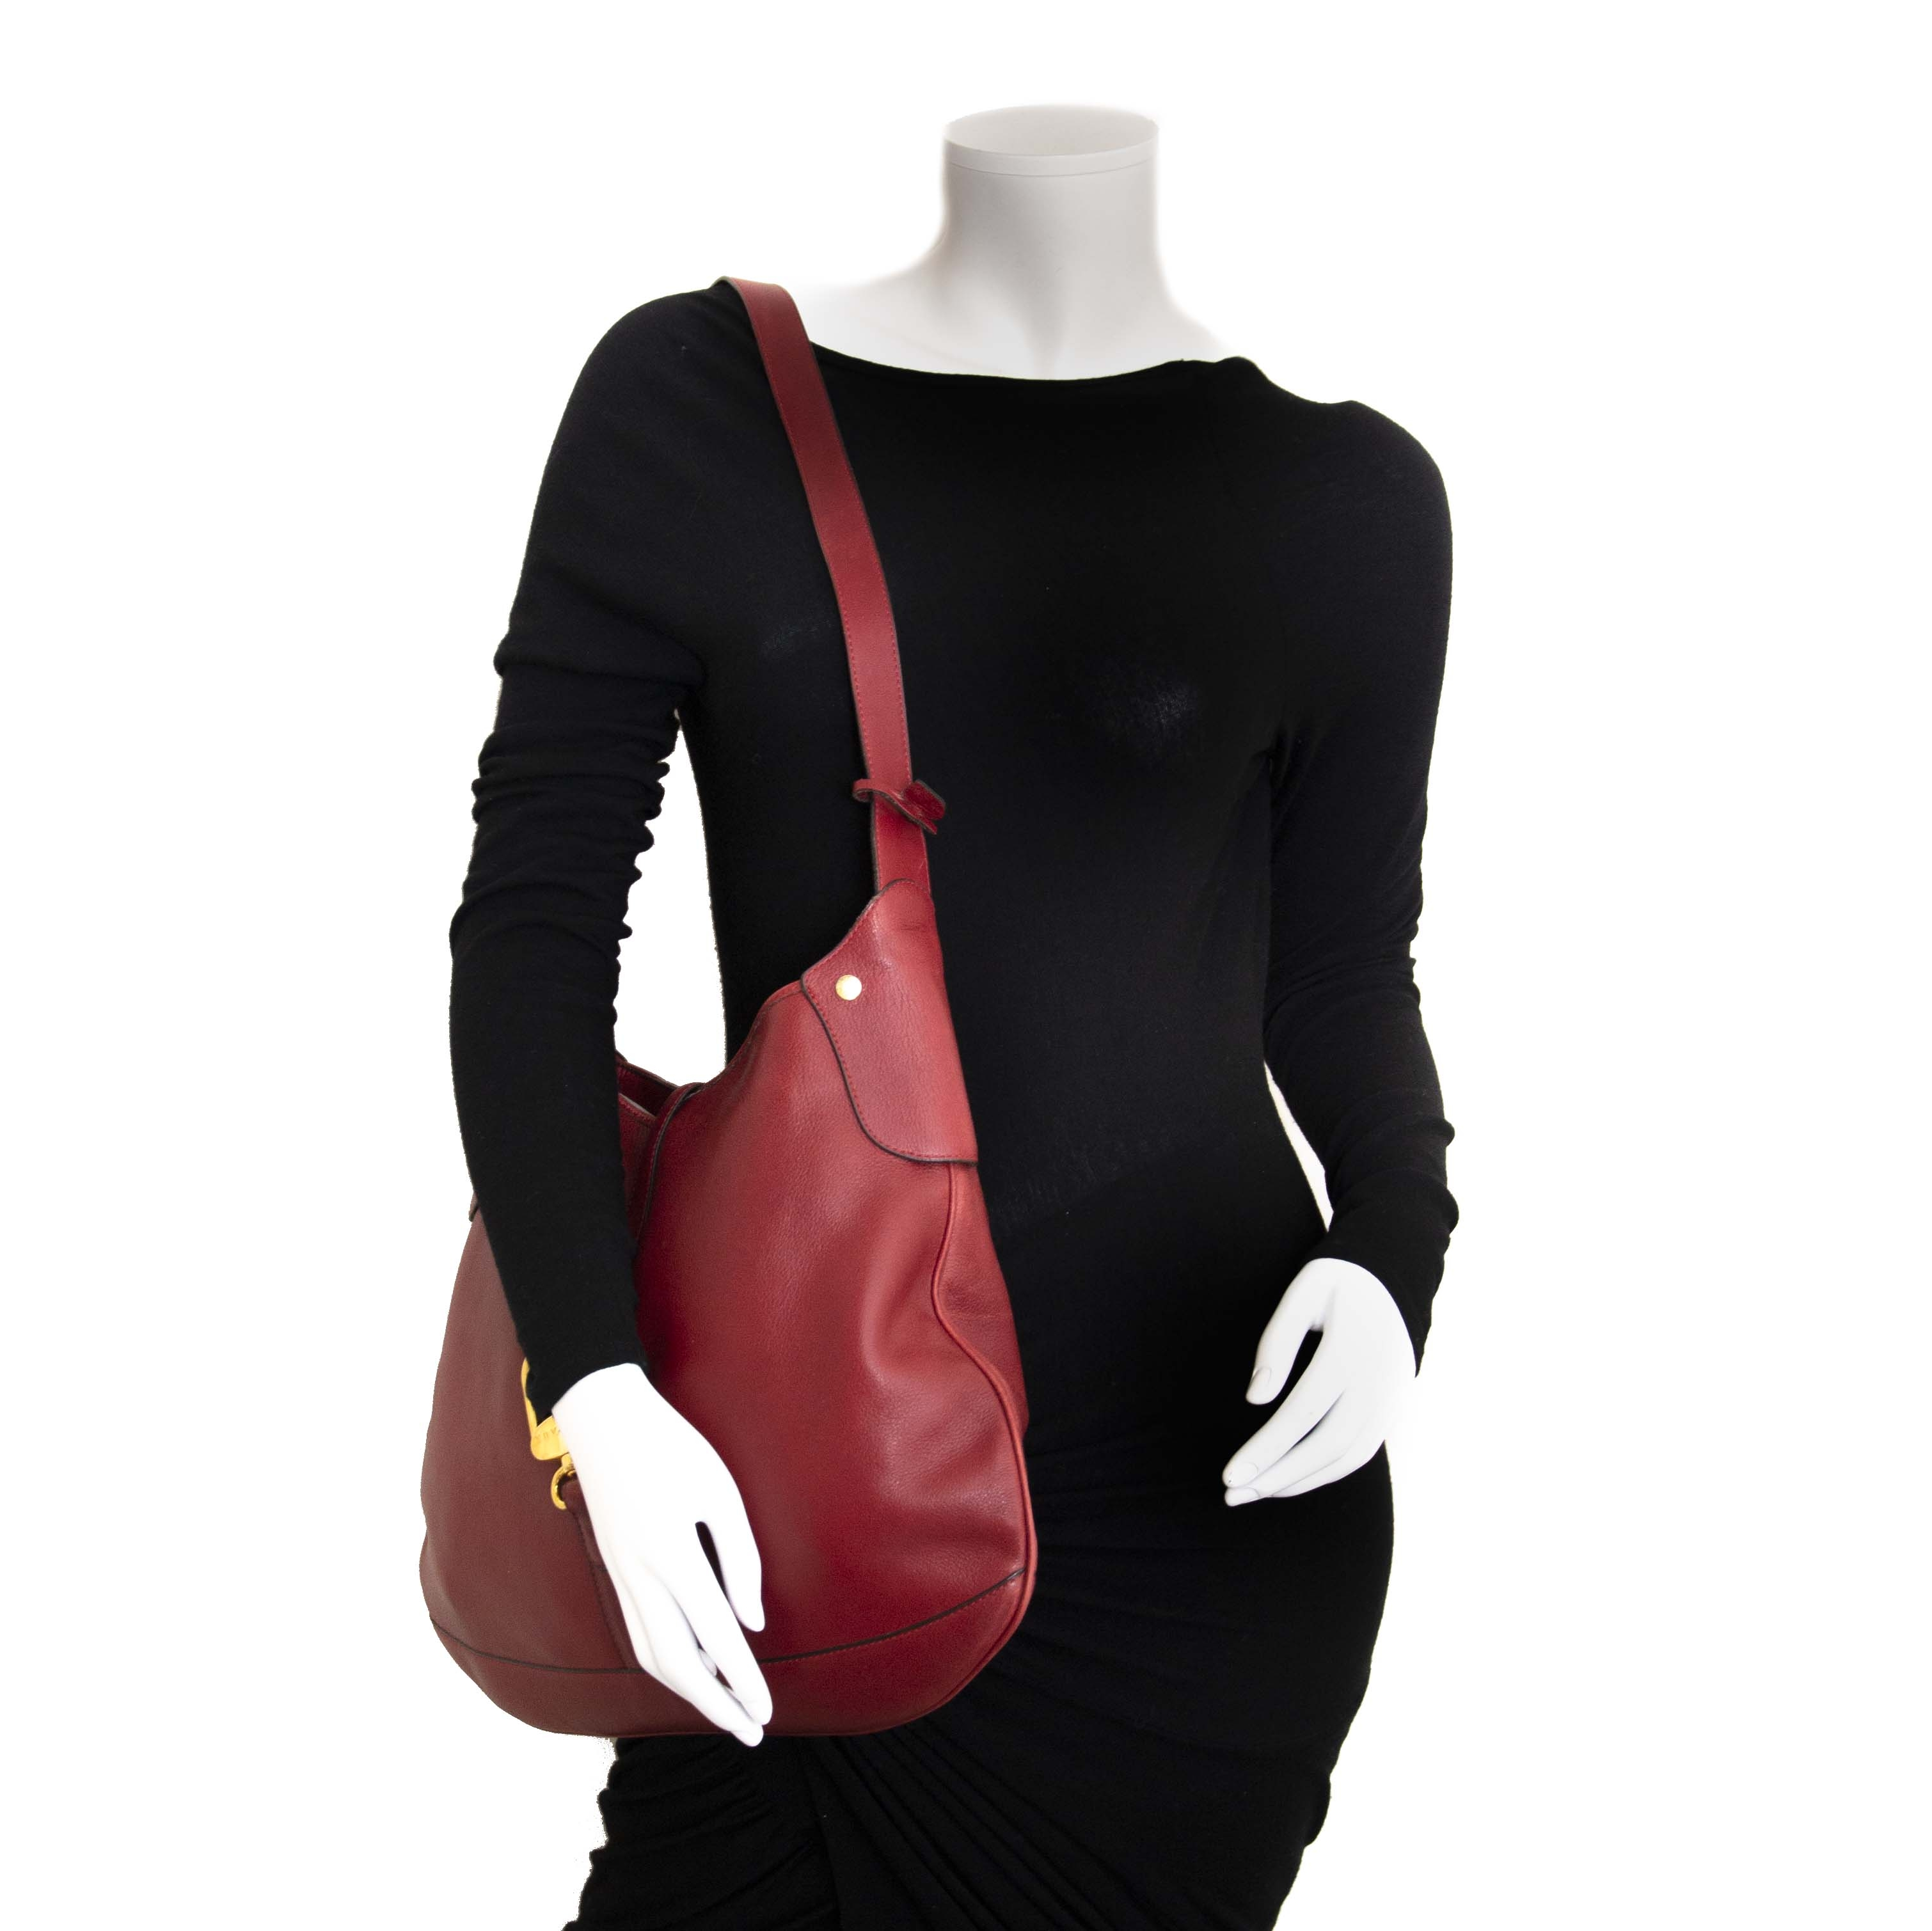 Delvaux Dark Red Shoulder Bag. For the best price at LabelLov. Pour le meilleur prix à LabelLOV. Voor de beste prijs bij LabelLOV.